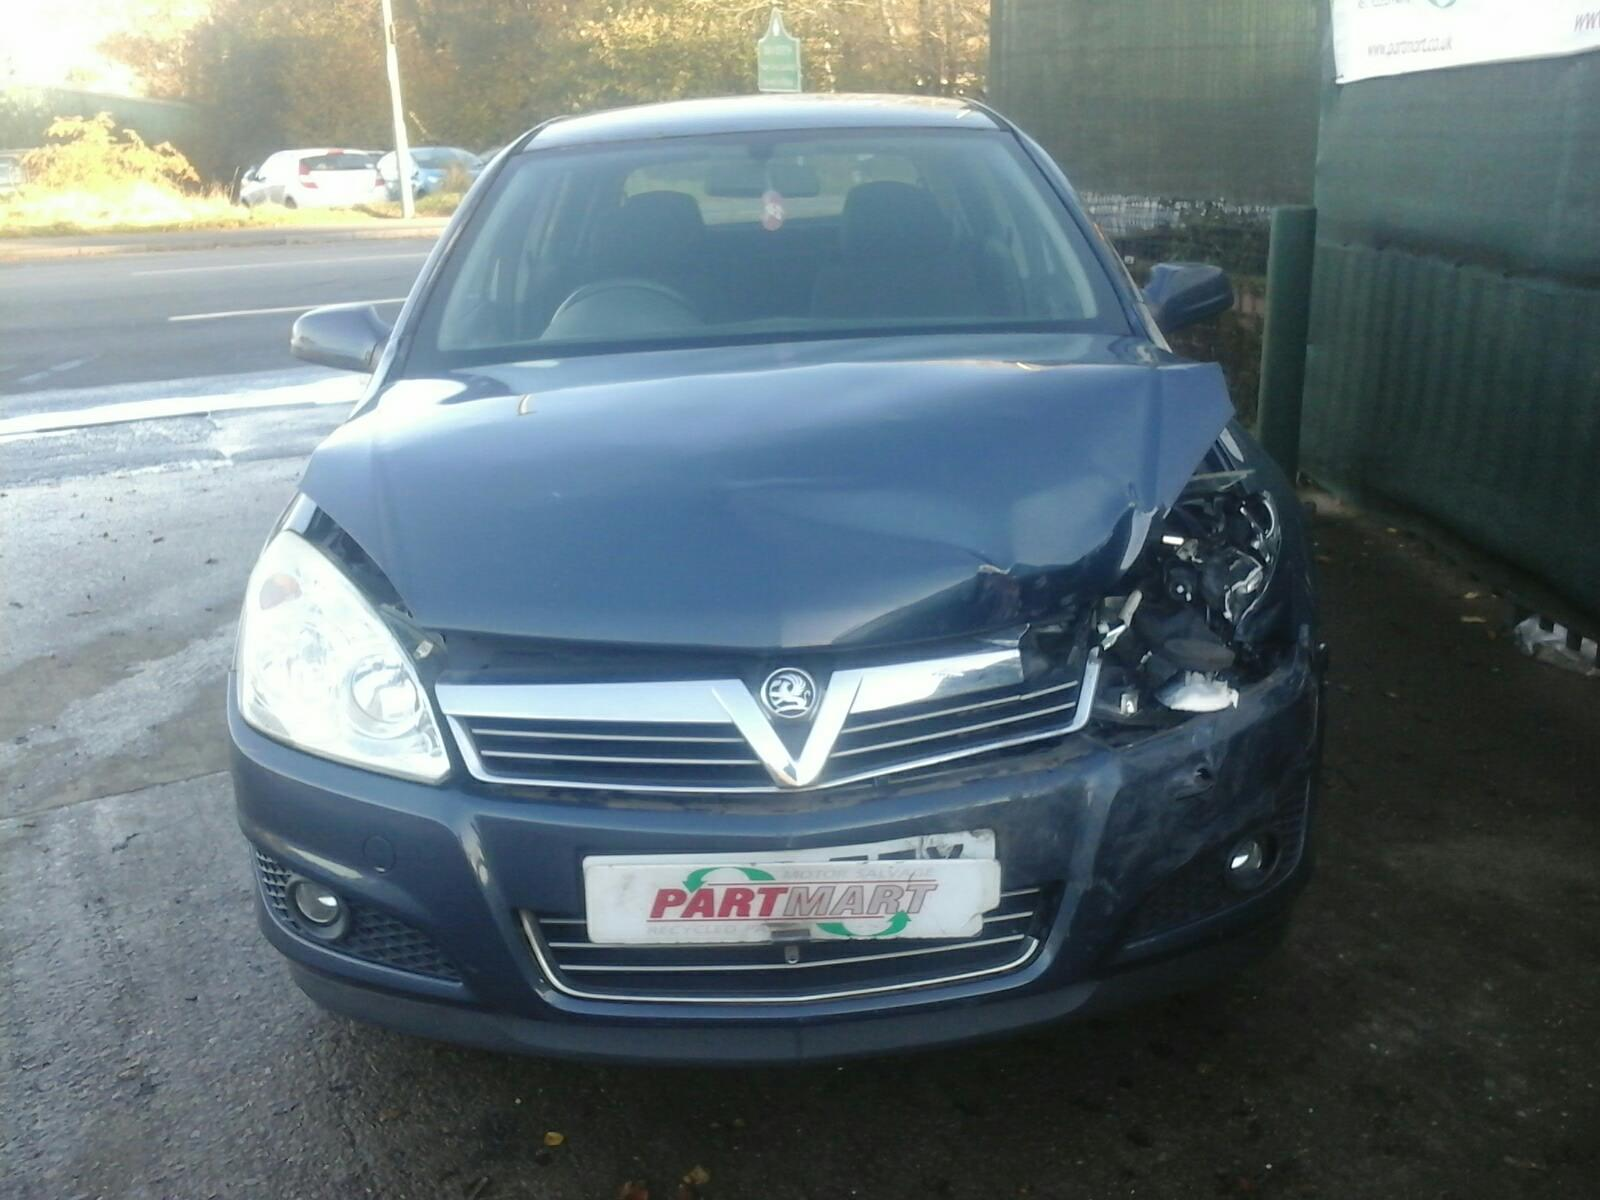 2009 Vauxhall Astra 5 Door Hatchback